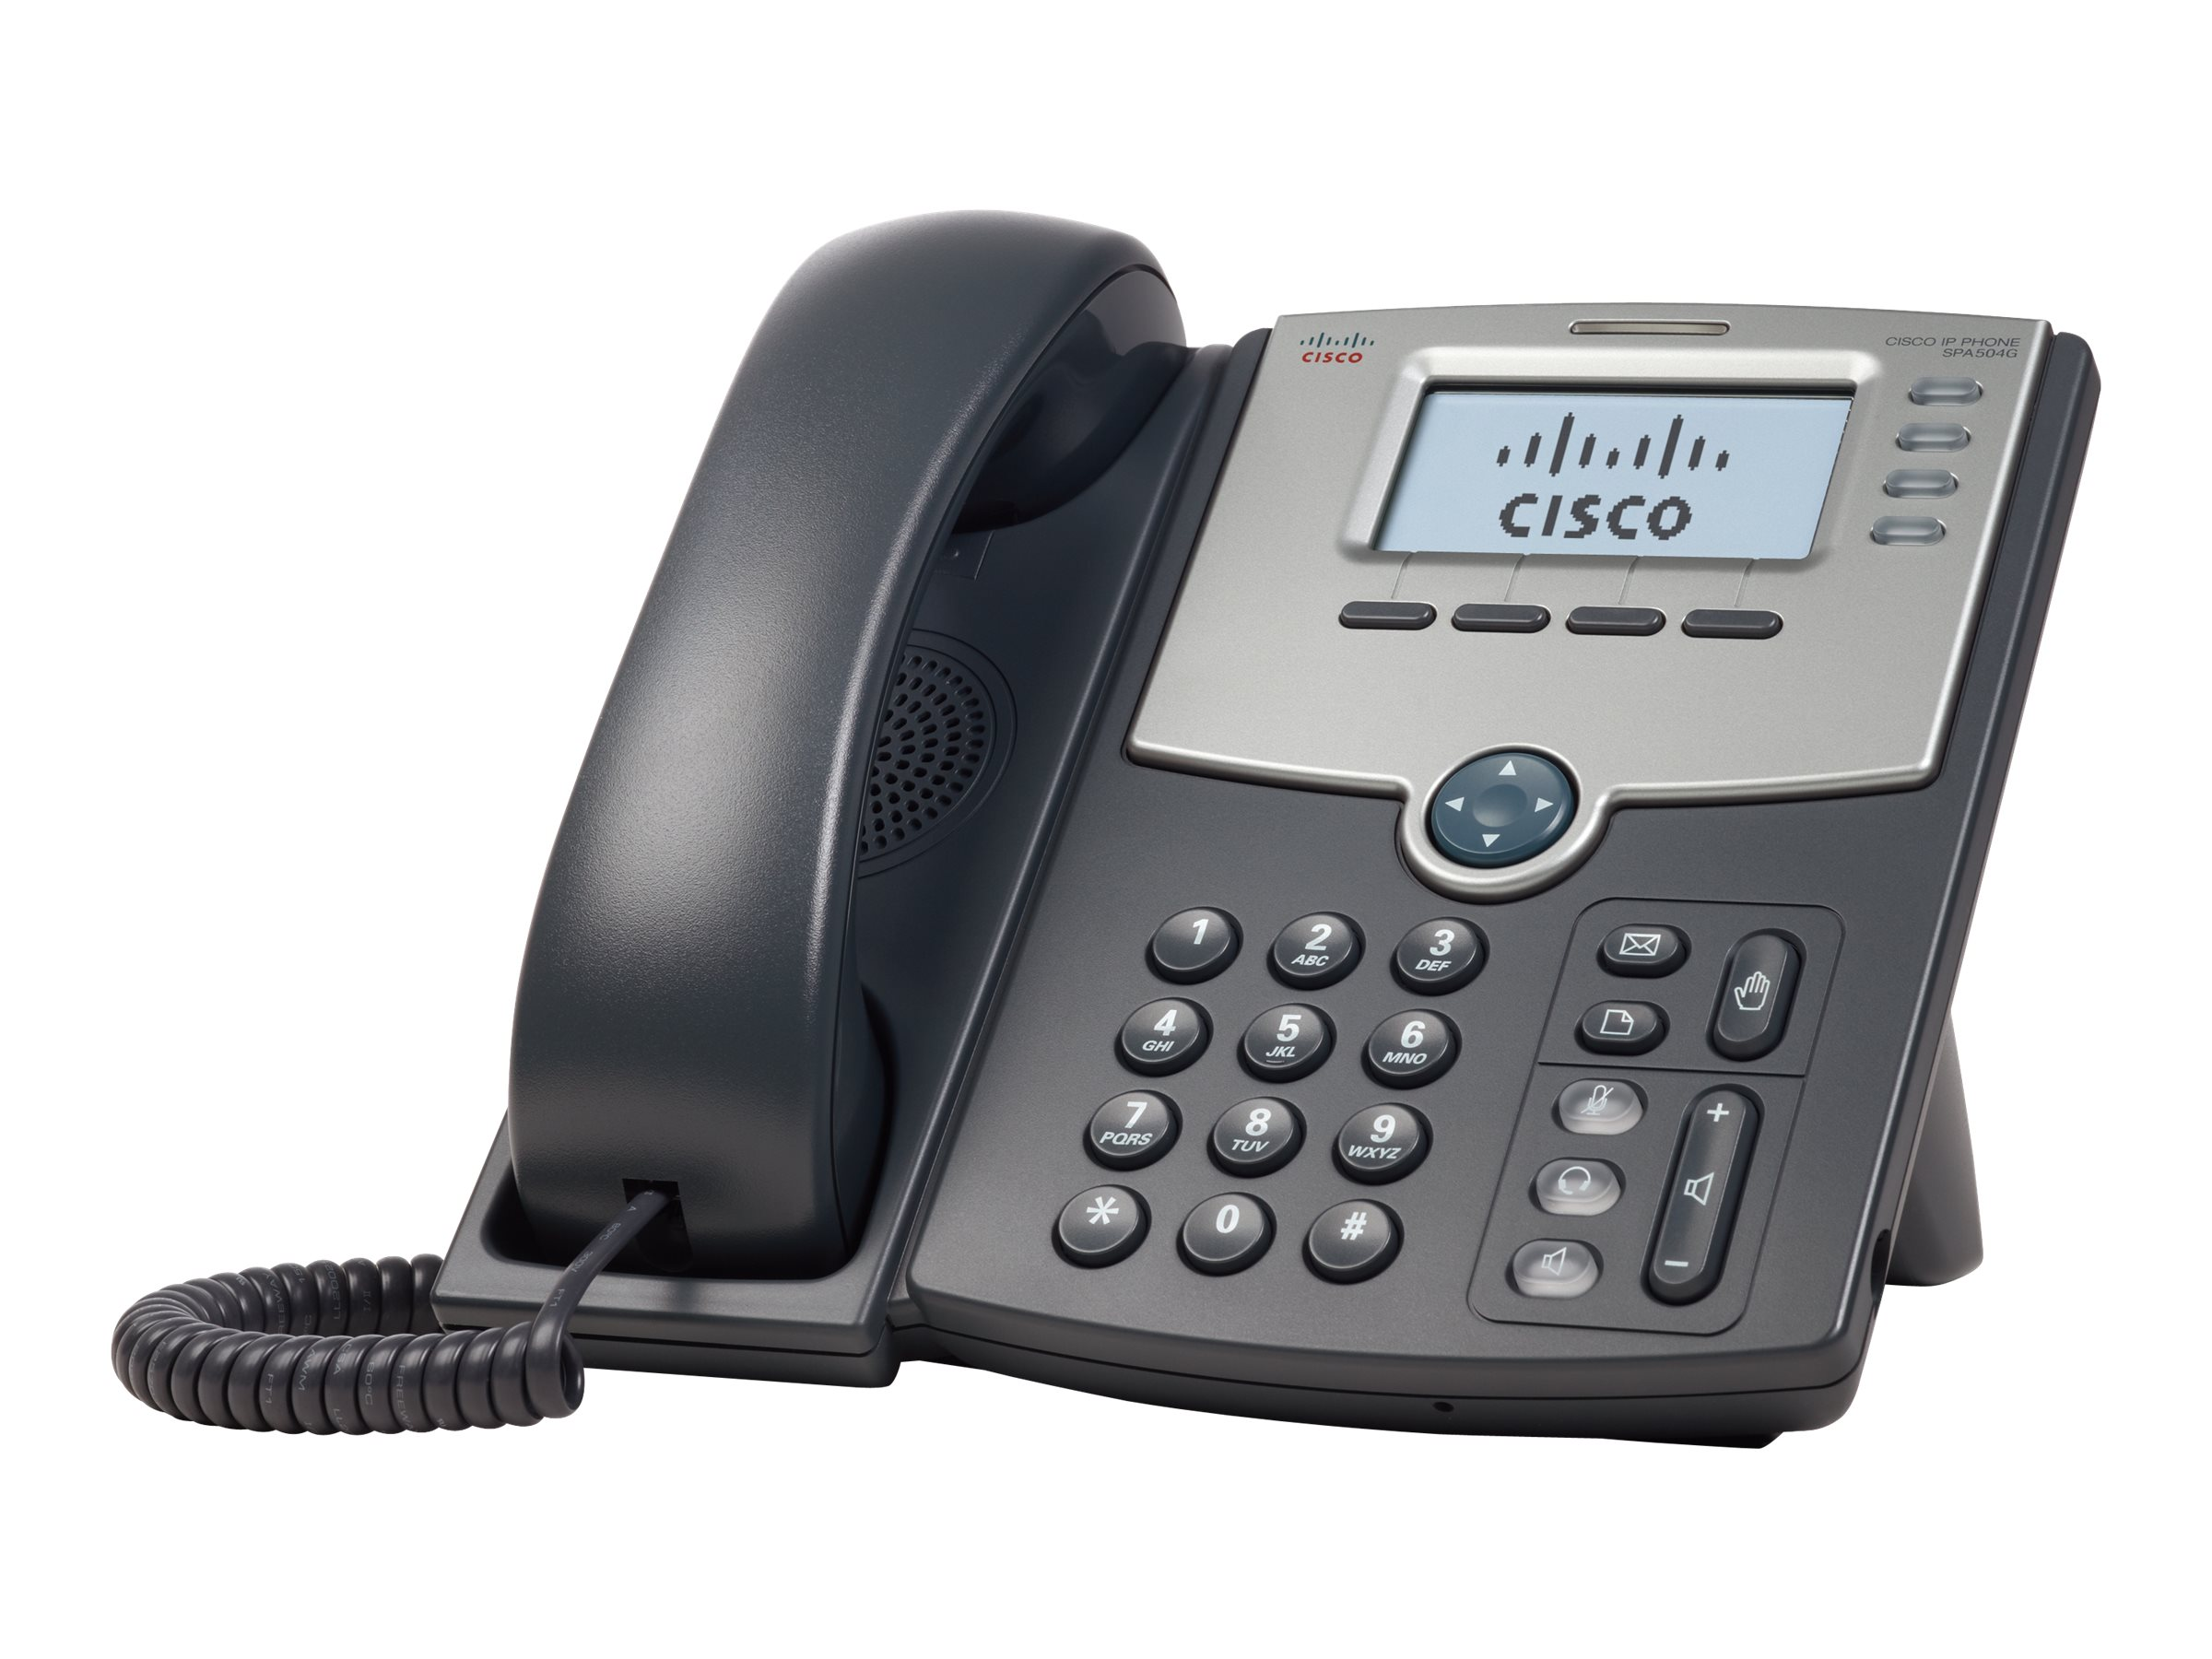 Cisco Small Business SPA 504G - VoIP-Telefon - SIP, SIP v2, SPCP - mehrere Leitungen - Silber, Dunkelgrau - für Small Business Pro Unified Communications 320 with 4 FXO